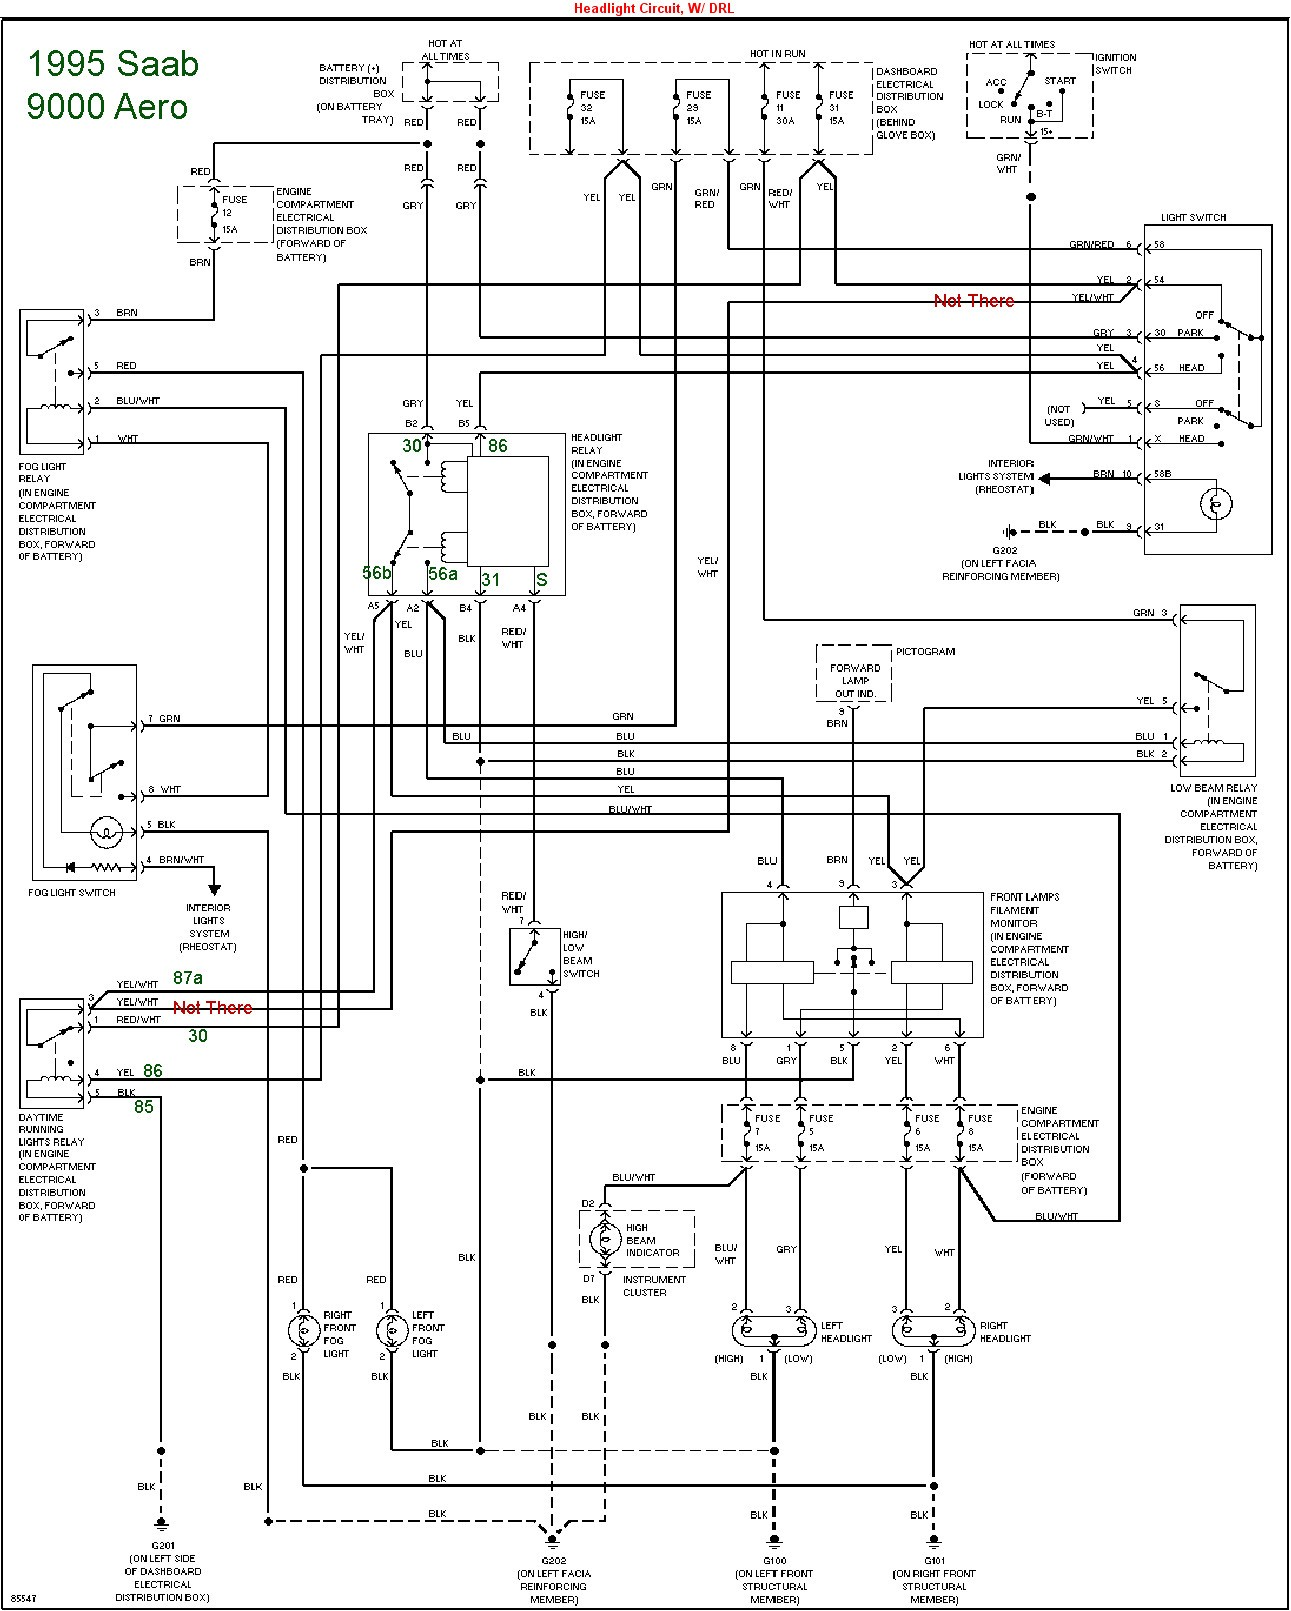 2005 Saab Radio Wiring Diagram Simple Moreover 2001 Dodge Ram 1500 9 3 Just Another Blog U2022 Mitsubishi